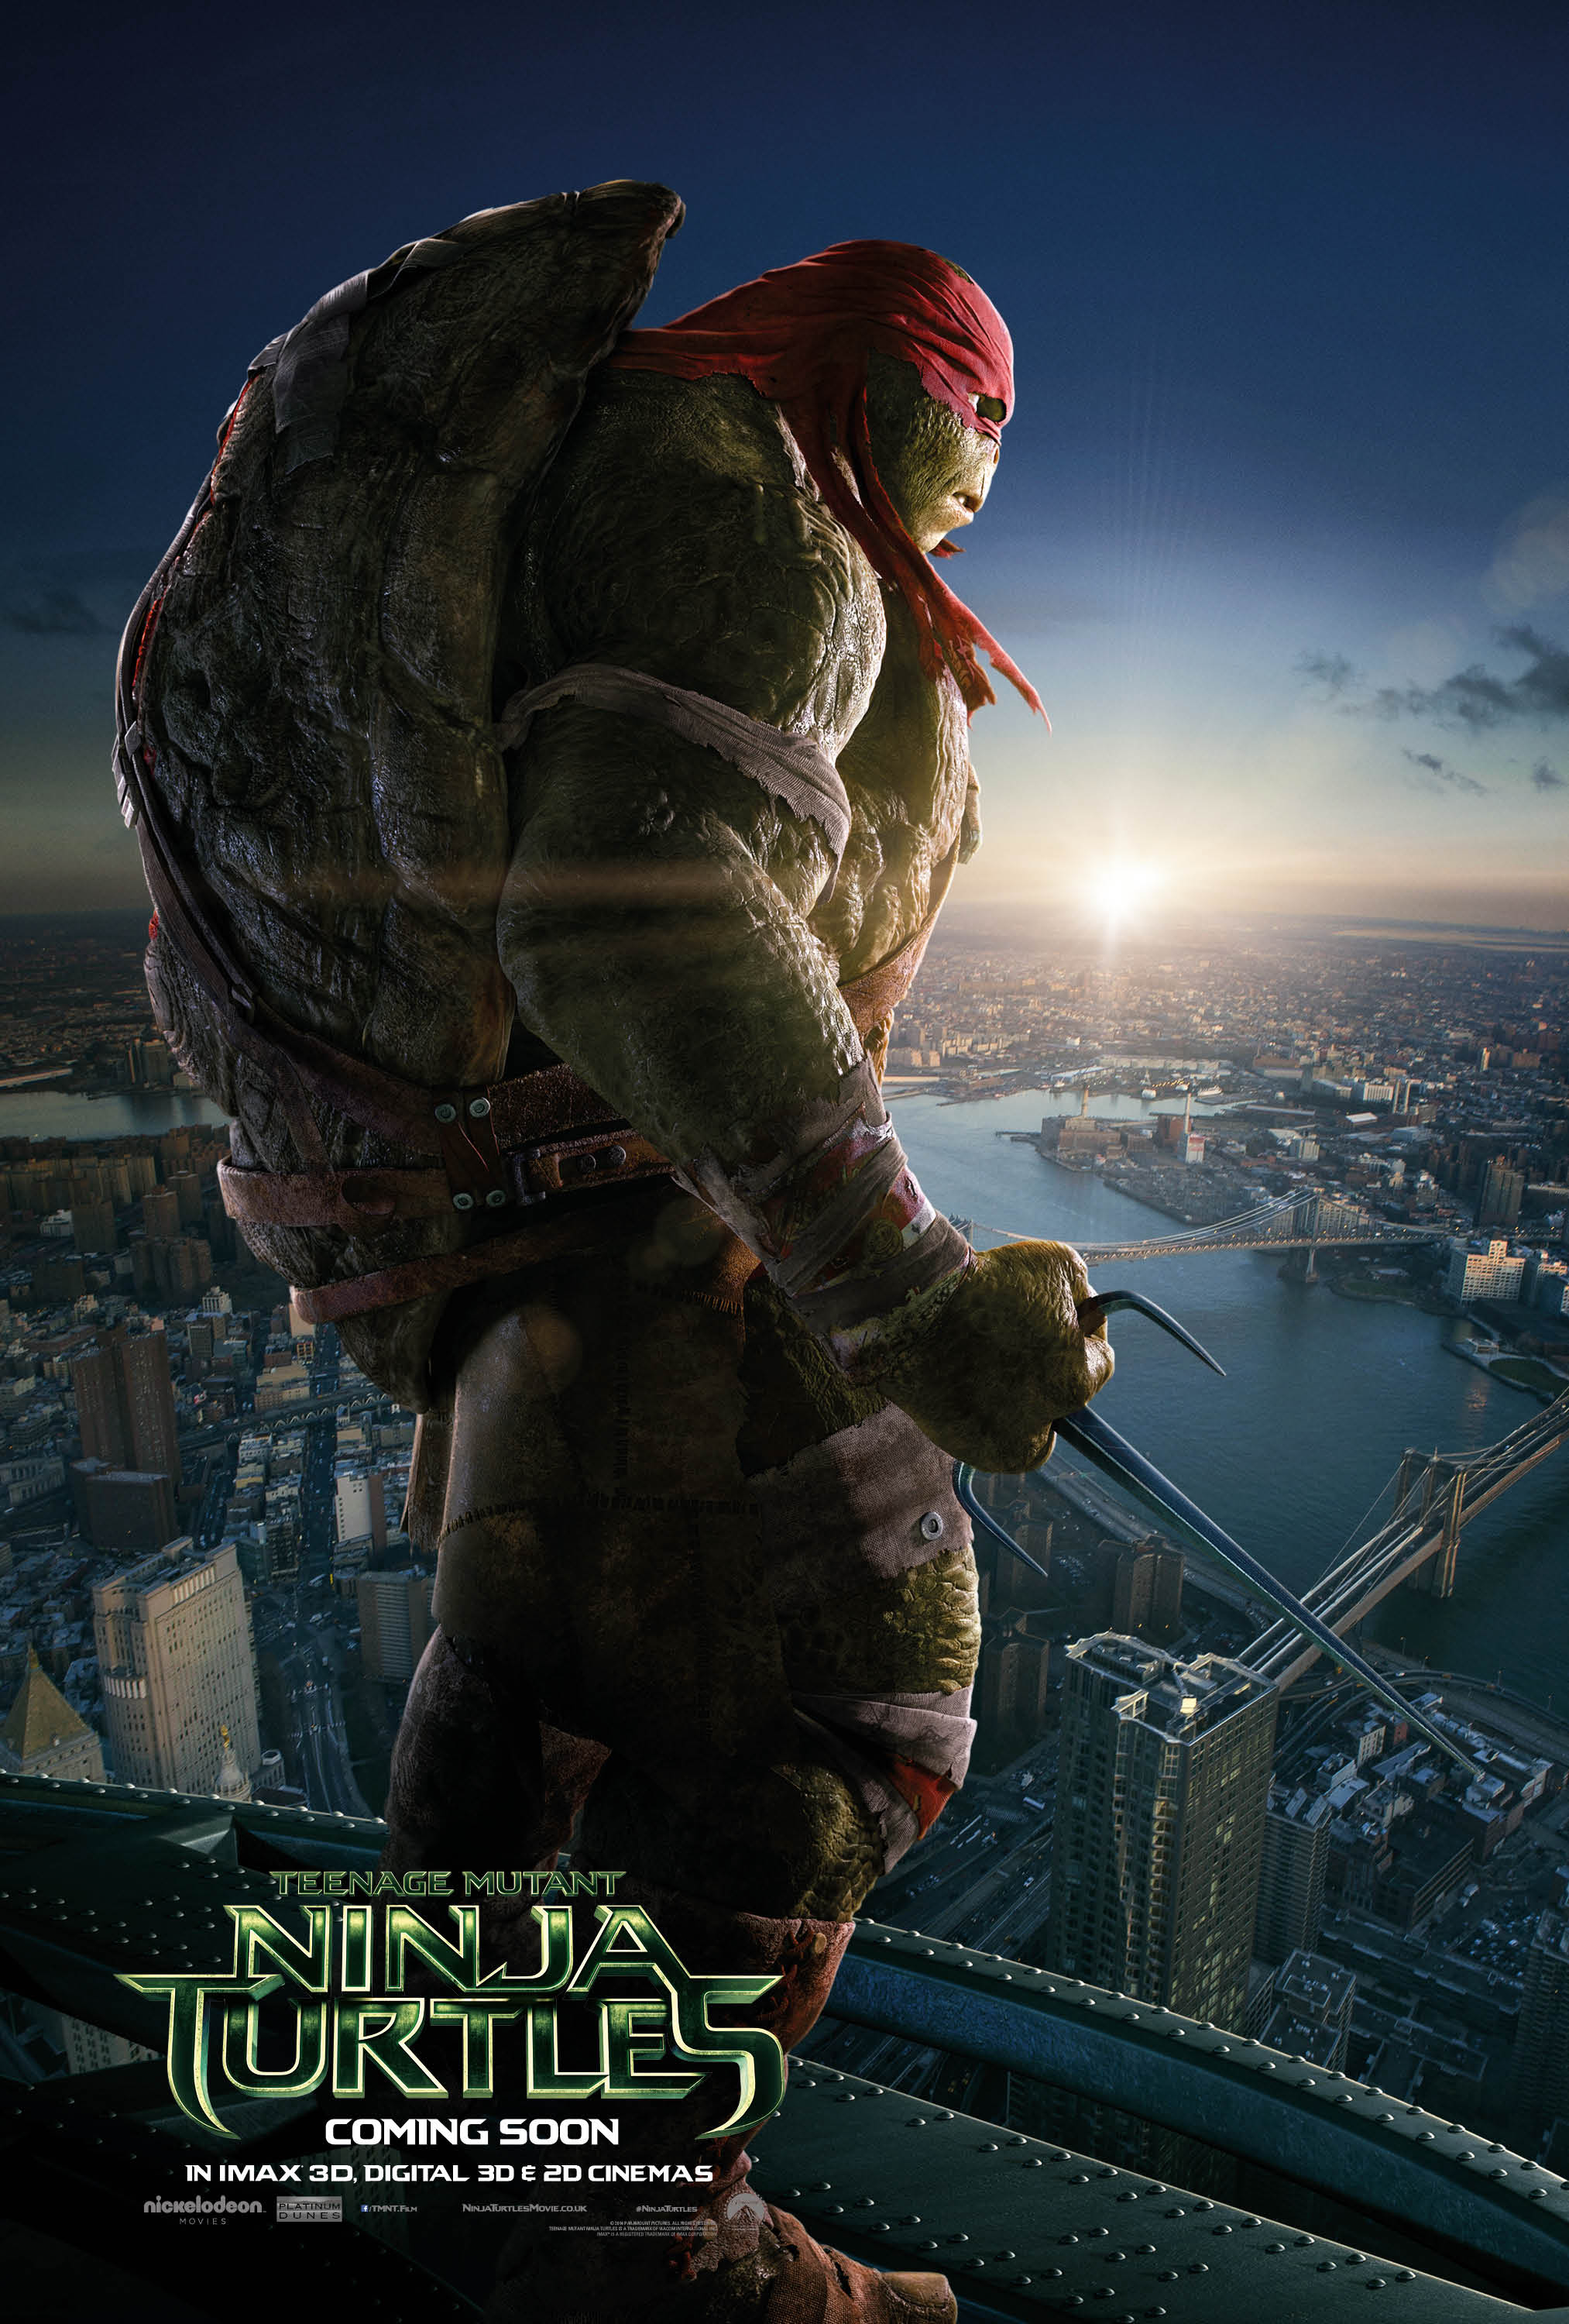 Four New Character Posters for Teenage Mutant Ninja Turtles